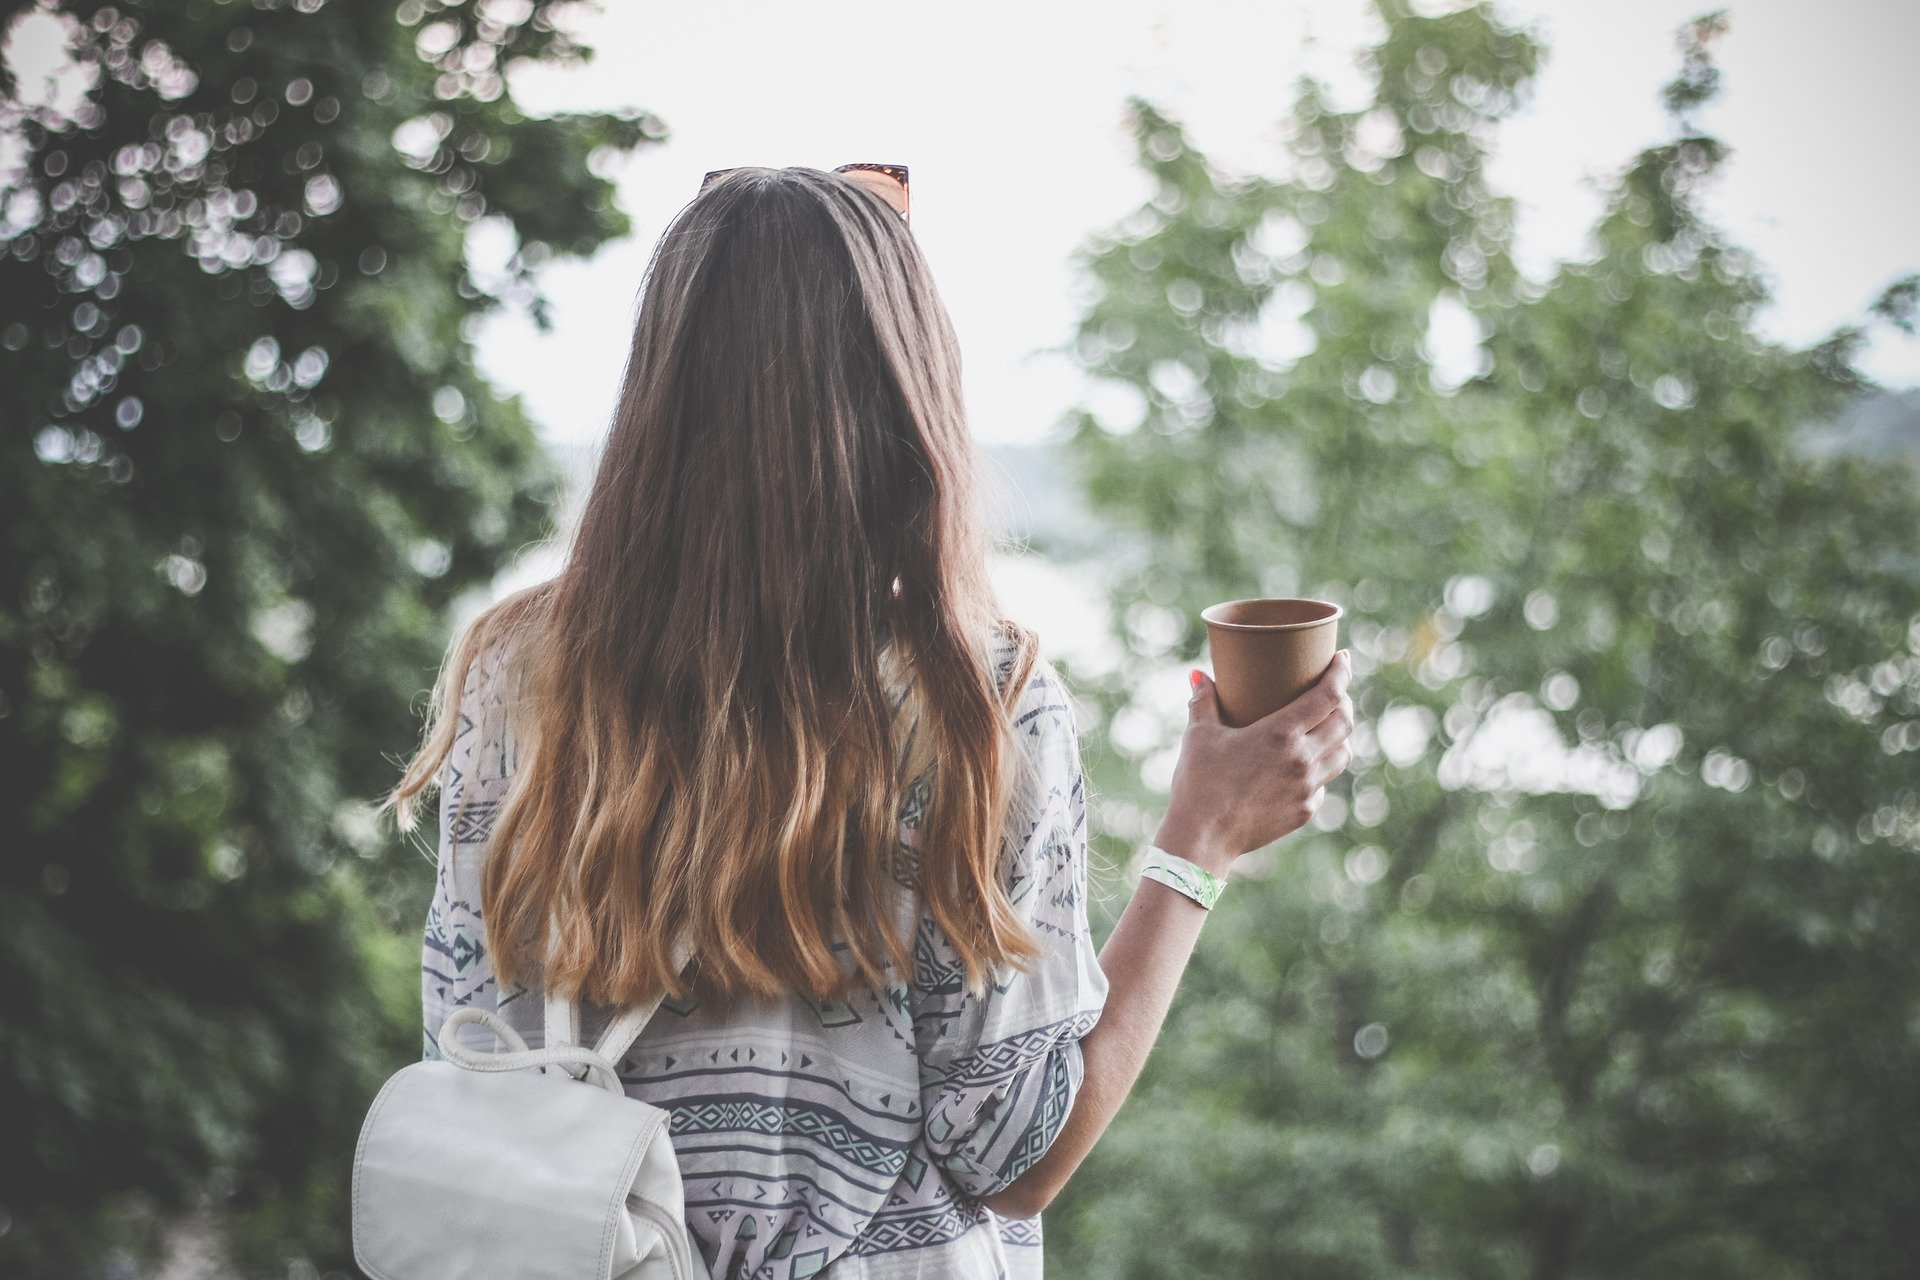 Woman with long brown hair wearing white backpack and holding coffee cup while facing green trees